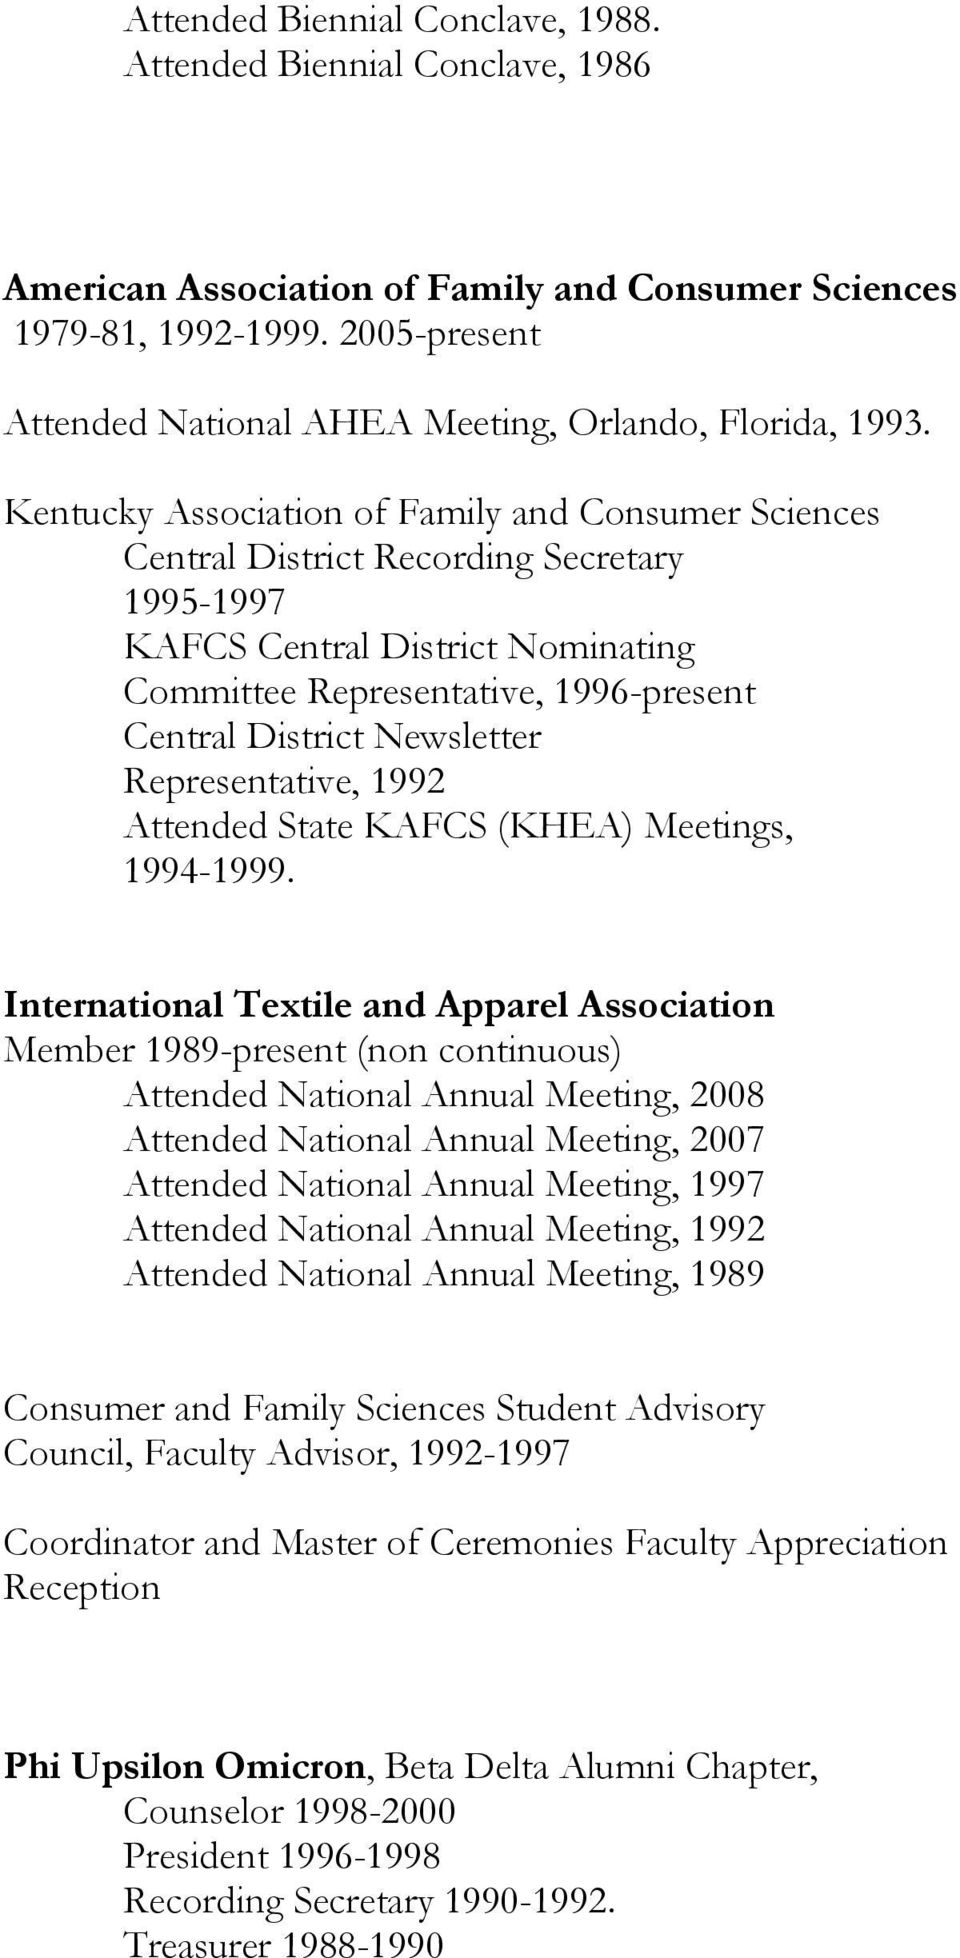 Kentucky Association of Family and Consumer Sciences Central District Recording Secretary 1995-1997 KAFCS Central District Nominating Committee Representative, 1996-present Central District